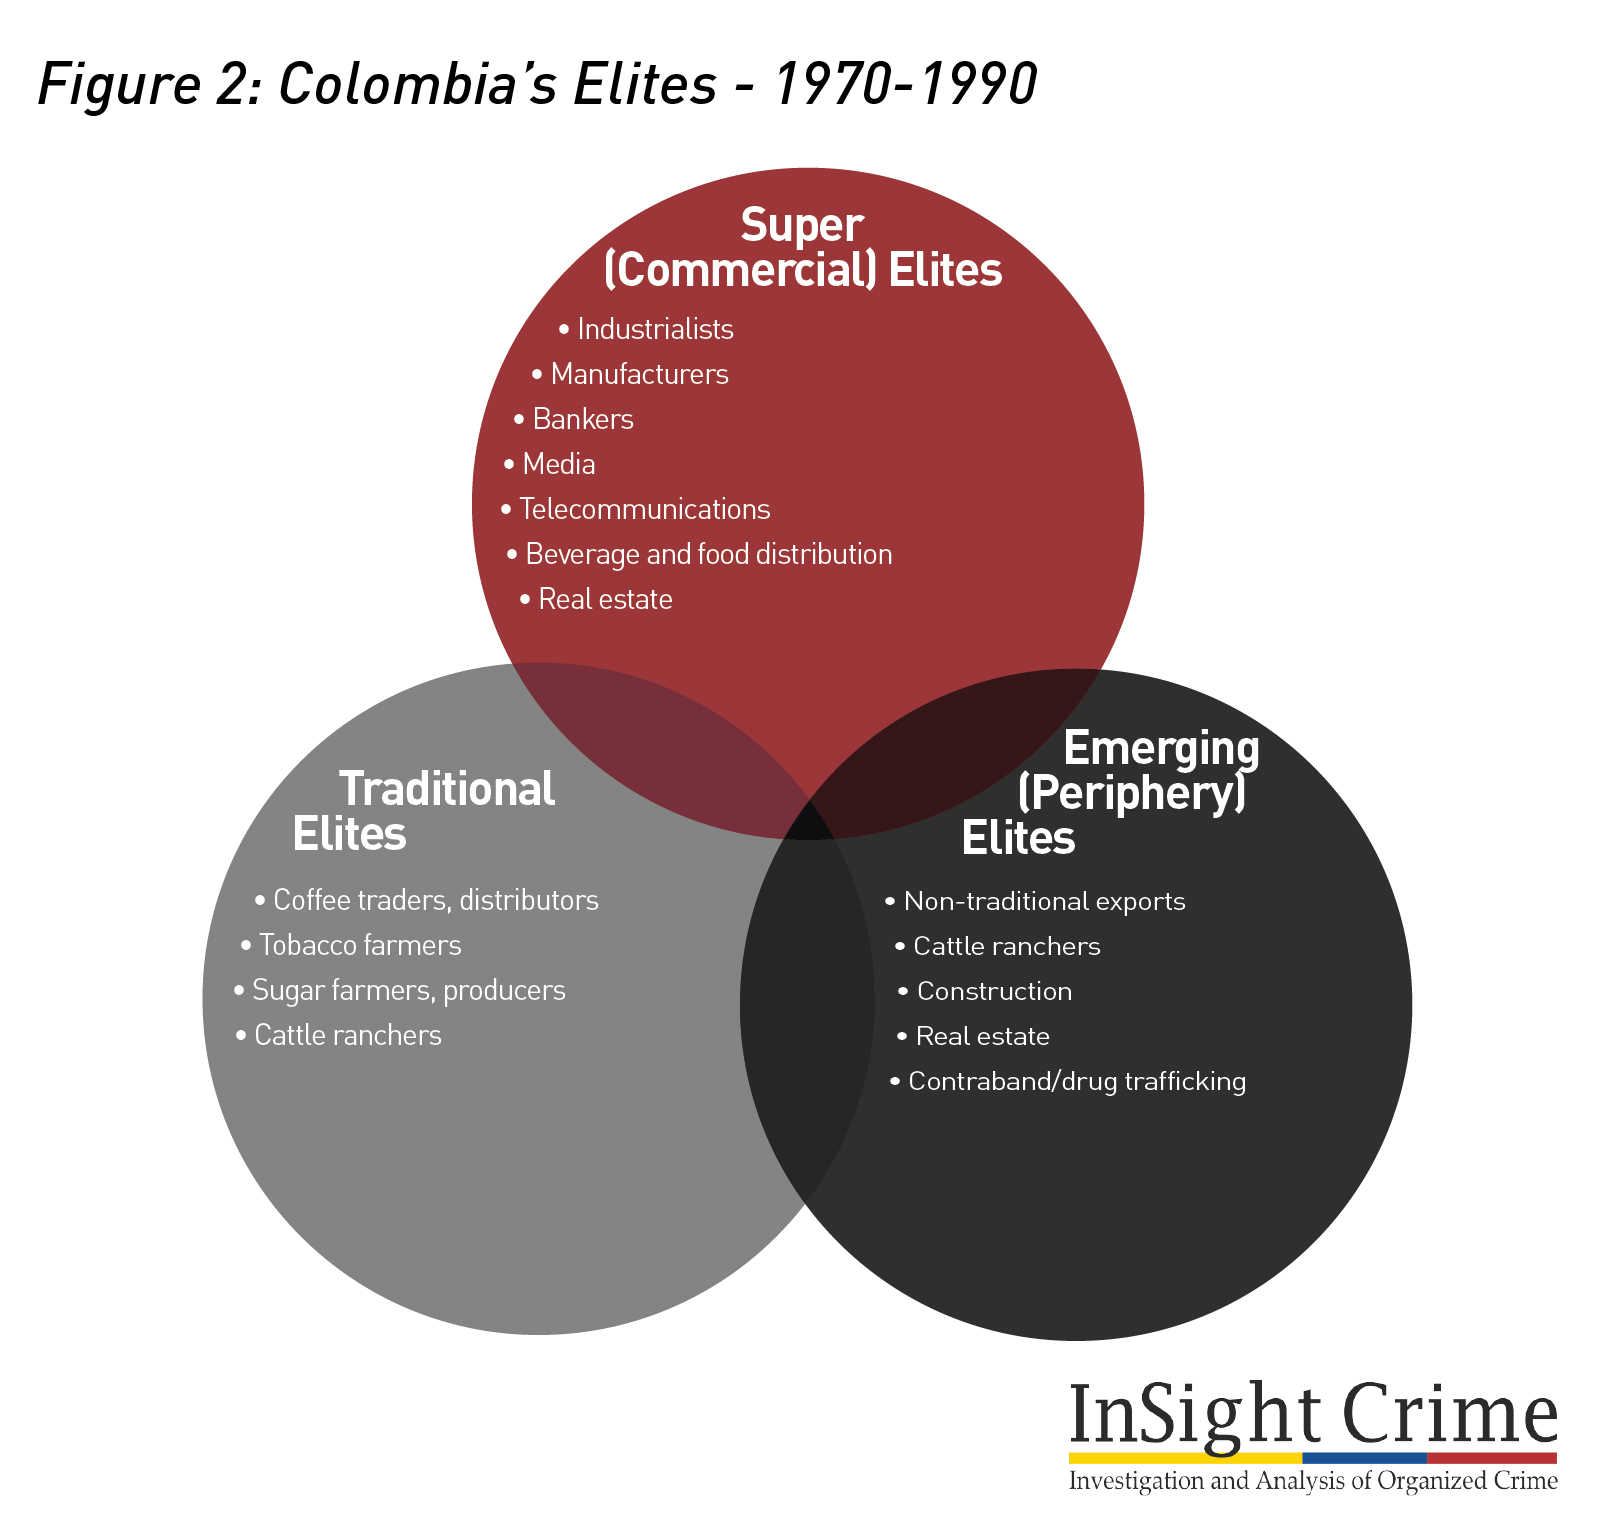 Figure2 Colombia Elite 1970 1990